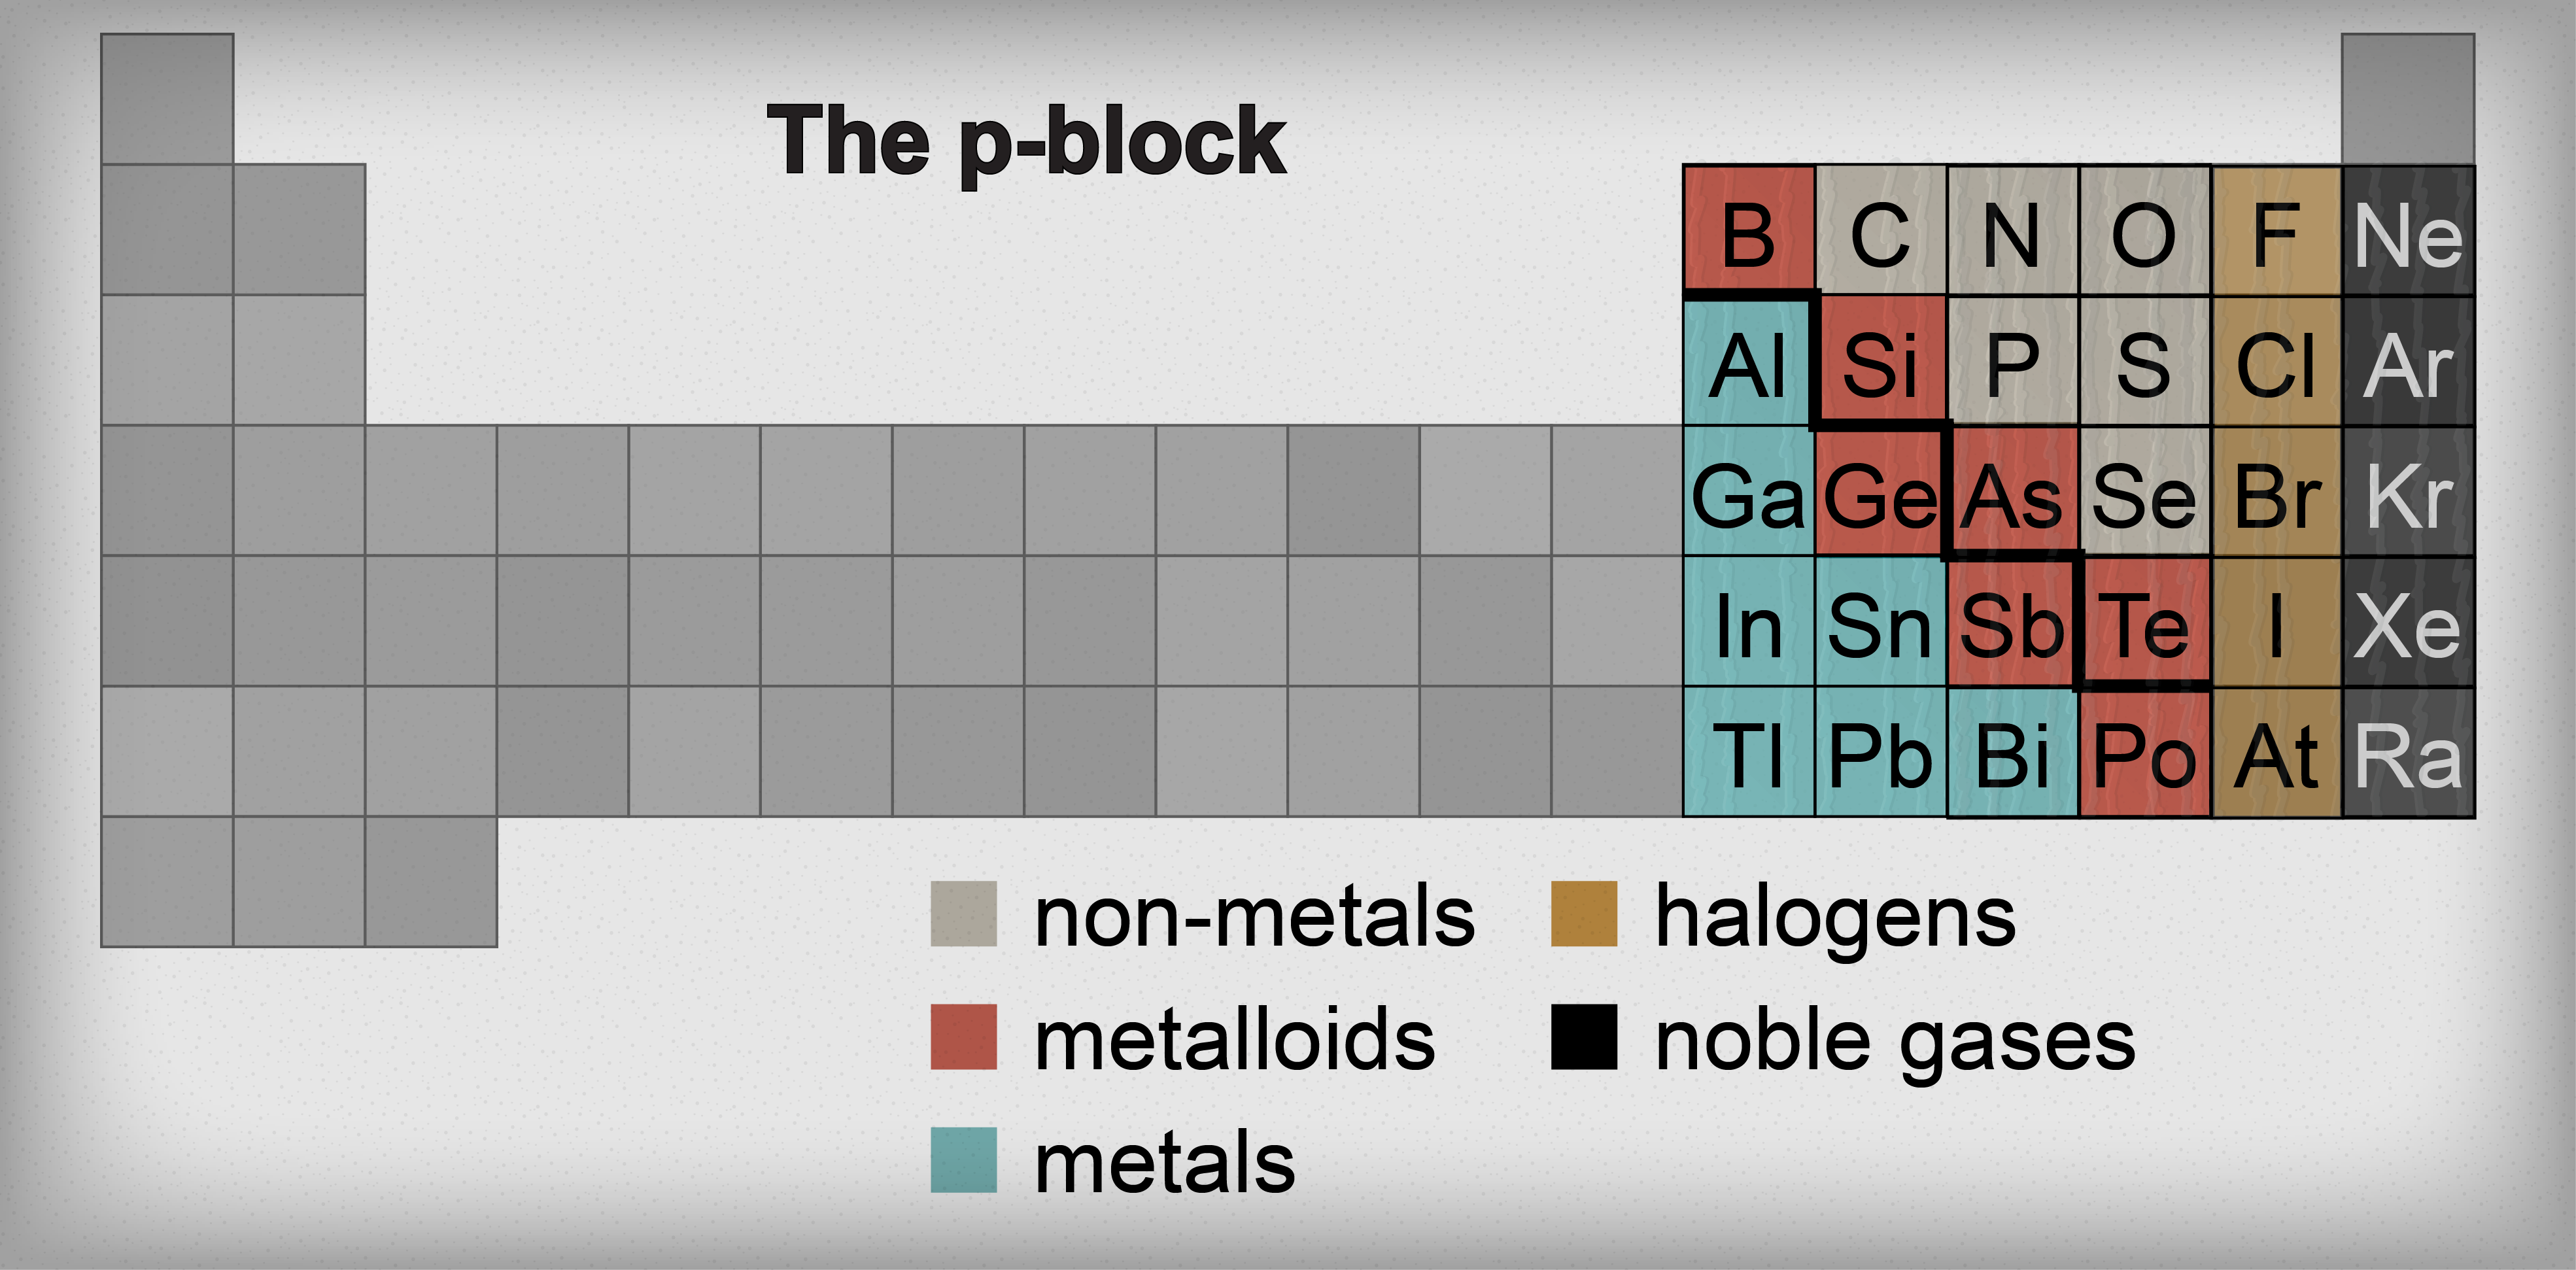 Chemistry metals metalloids and non metals shmoop chemistry in this section dividing elements into columns is so 2000 and late instead the p block is split into metals metalloids and non metals urtaz